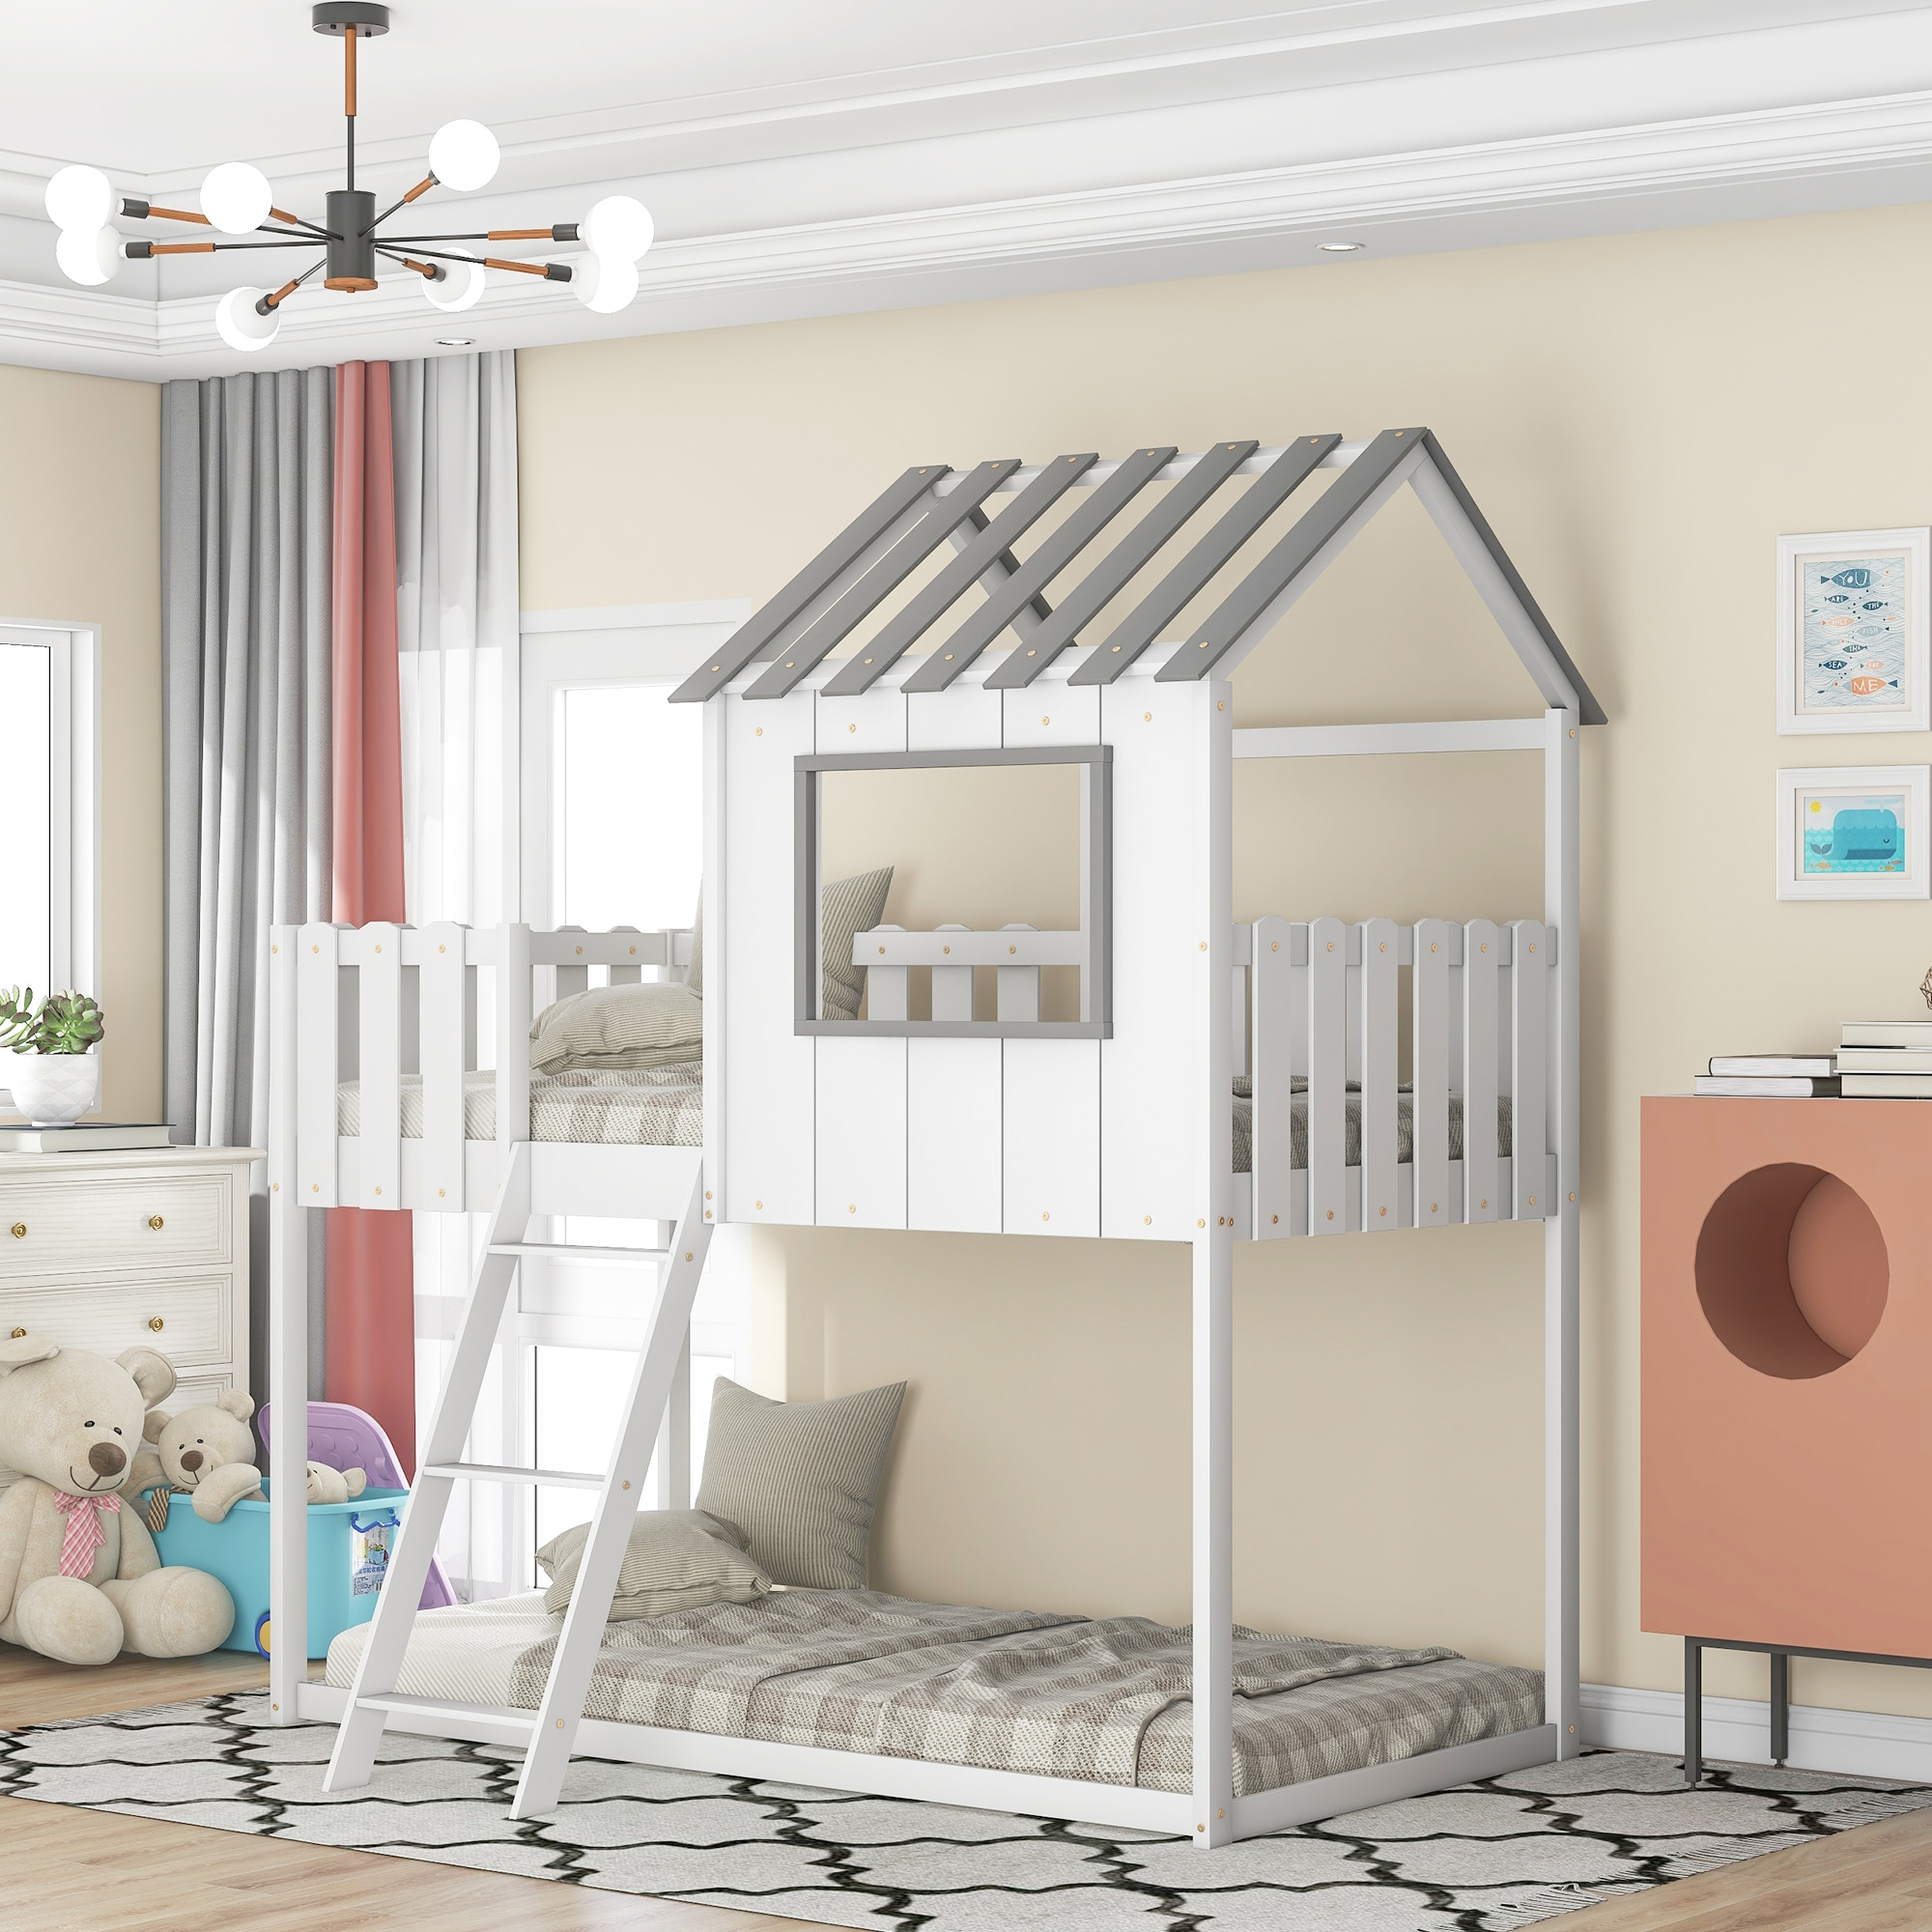 """Bunk House Bed Frame Twin Size with Rustic Fence-Shaped Guardrail Pine 37""""x75""""x78"""" White/Gray[US-Stock]"""